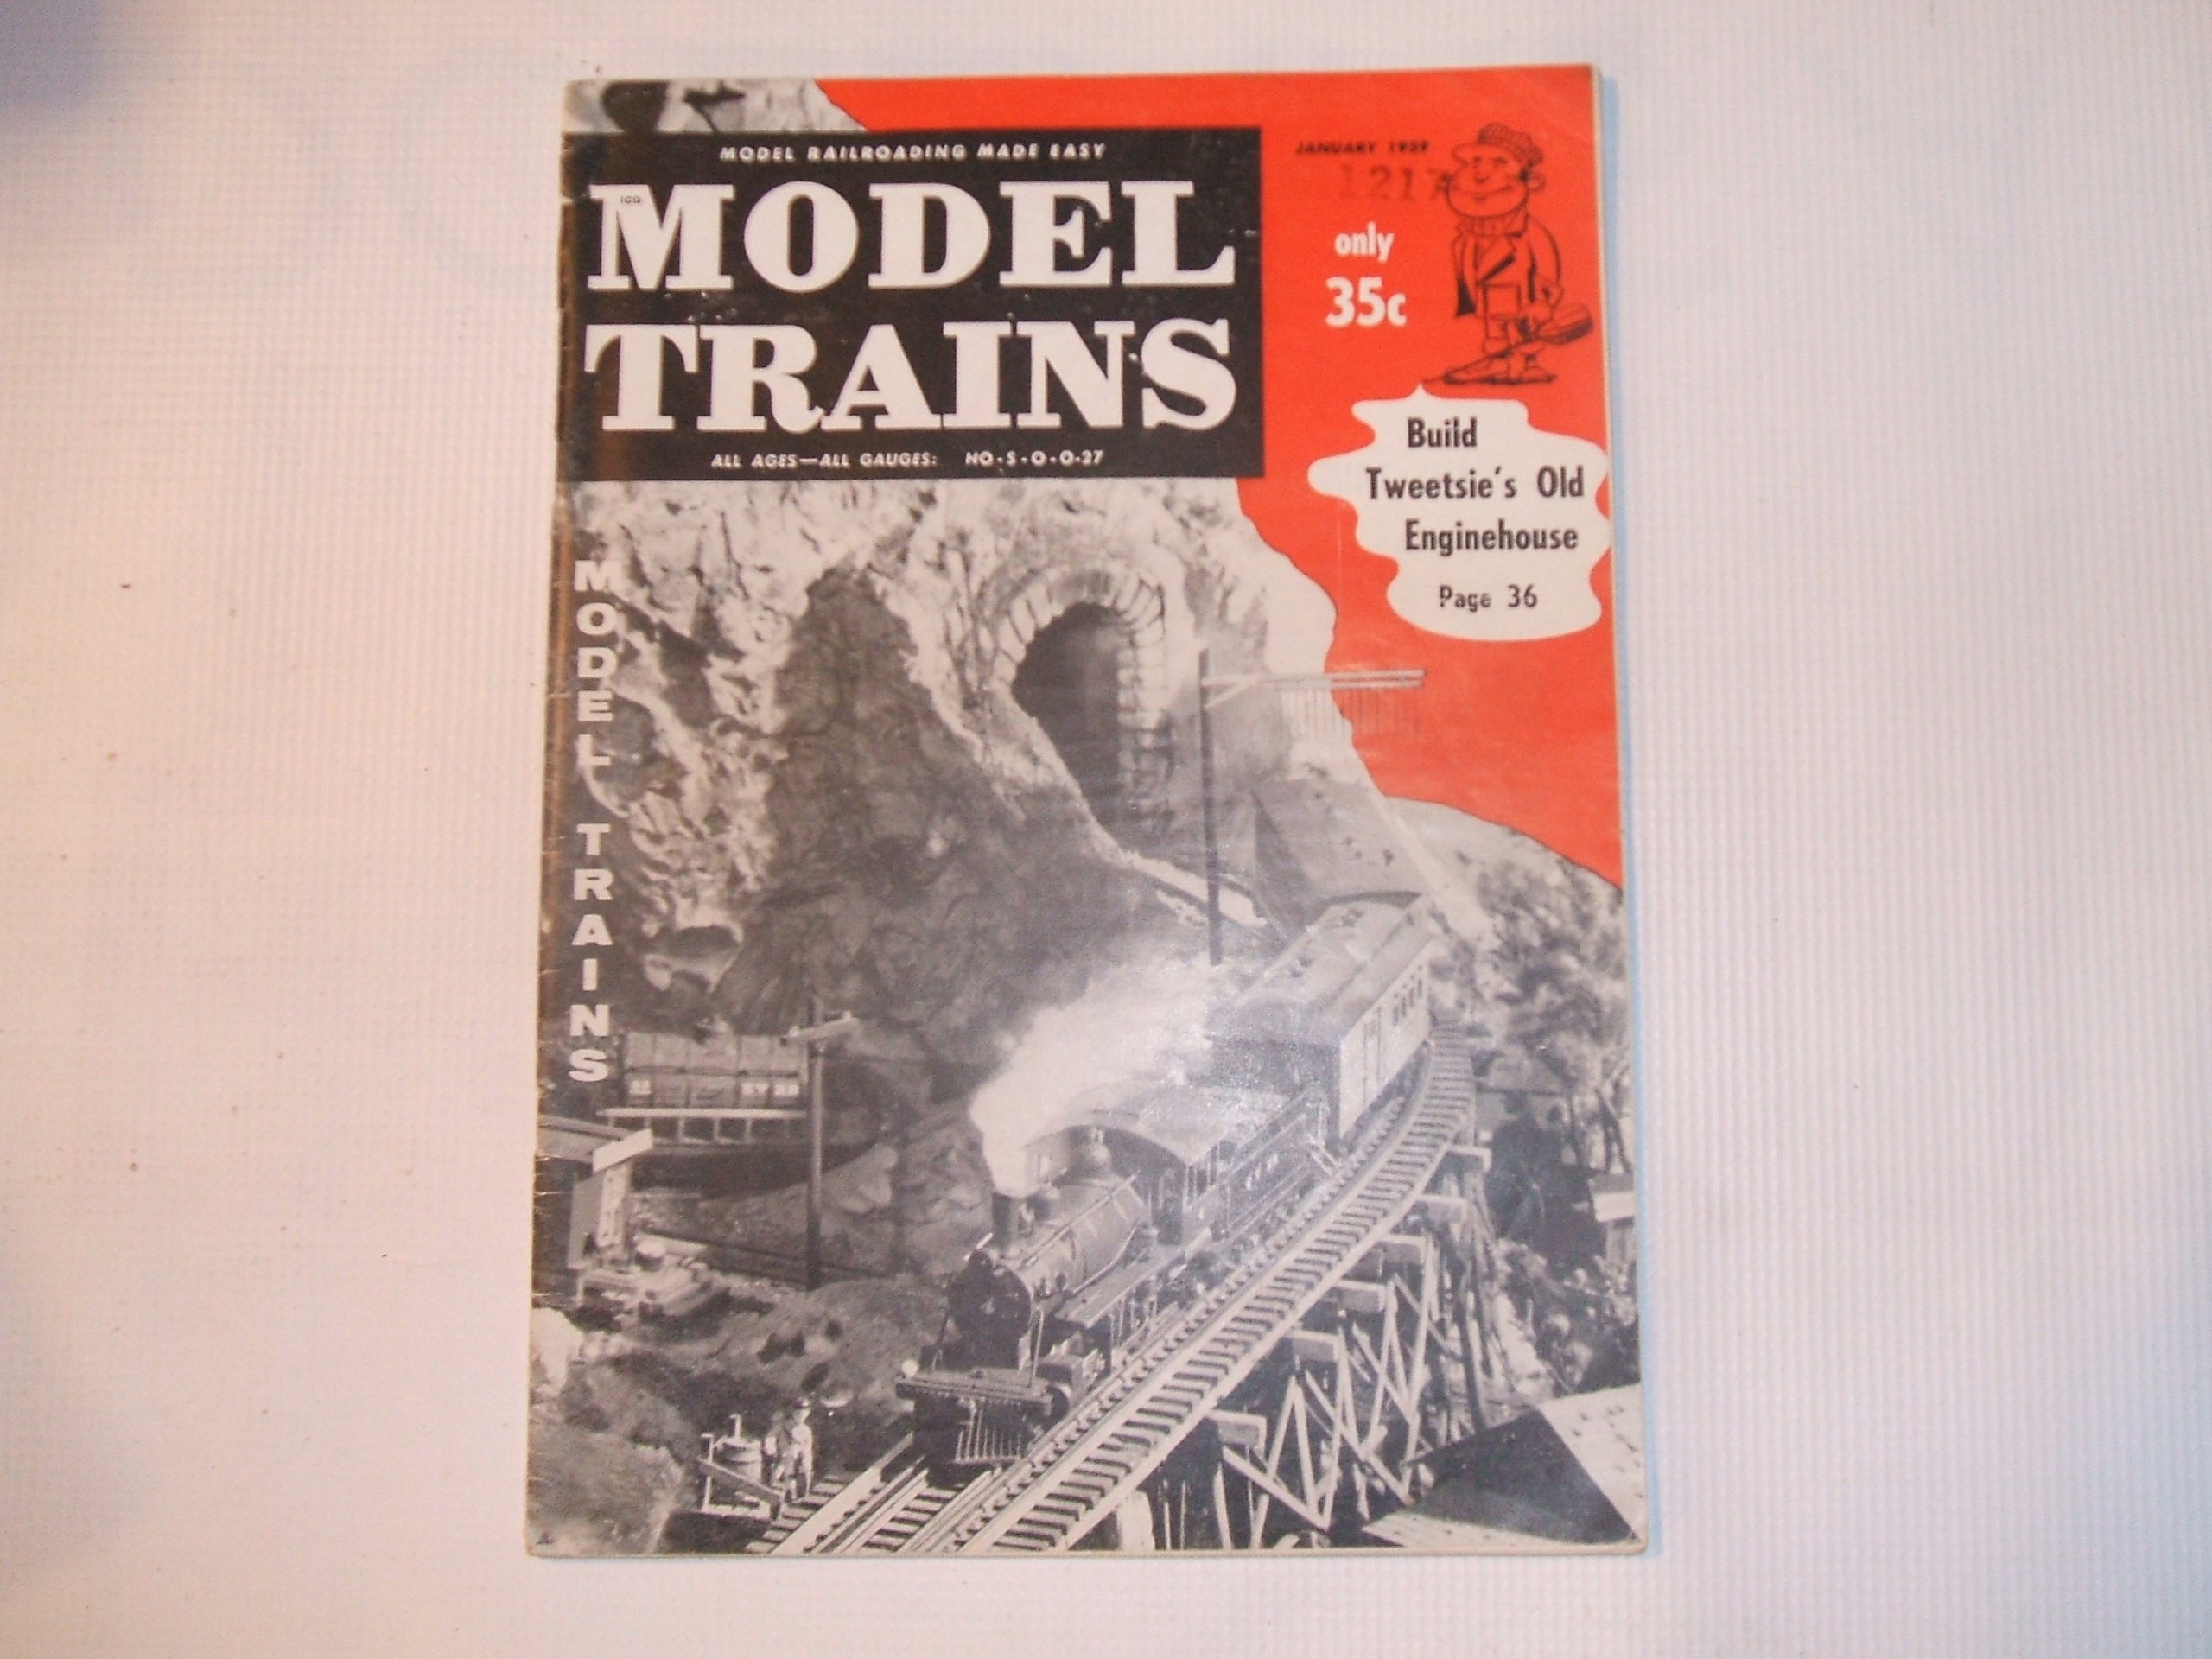 Model Trains January 1959 (VOLUME 12, NUMBER 1)